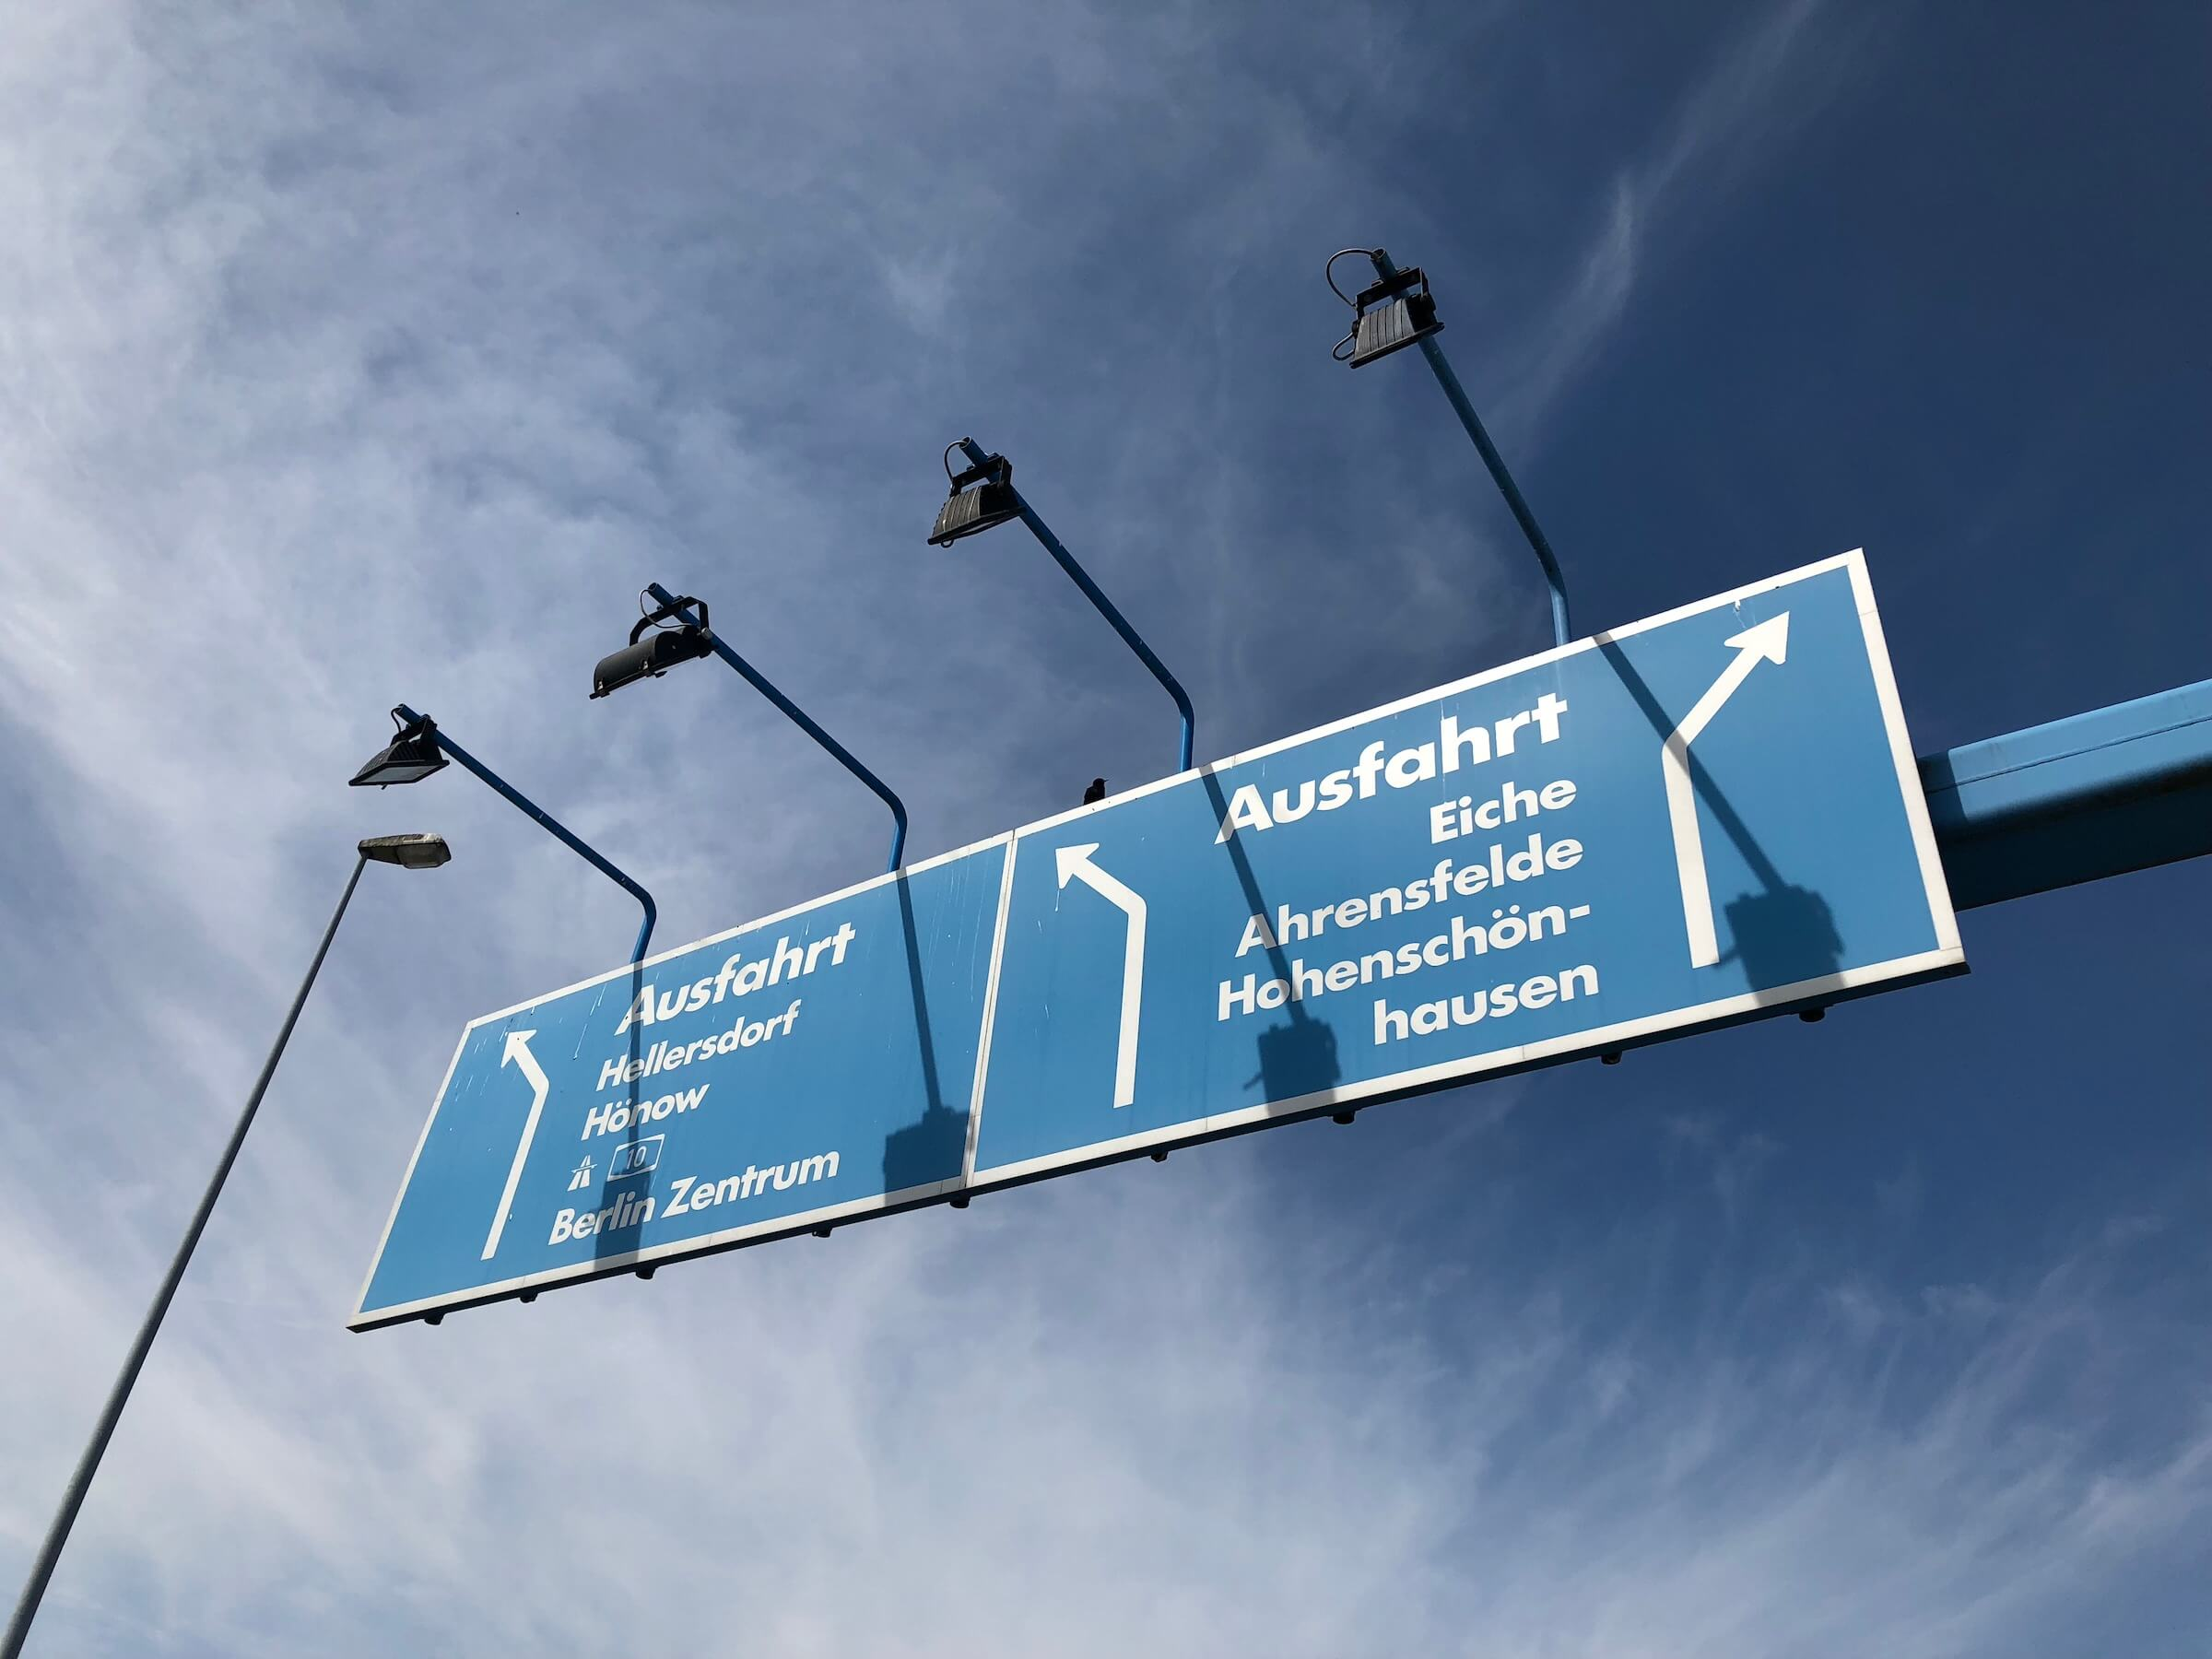 Side angle: Blue street sign showing direction in white letters with lights creating shadows on the surface and dark-blue sky with soft clouds